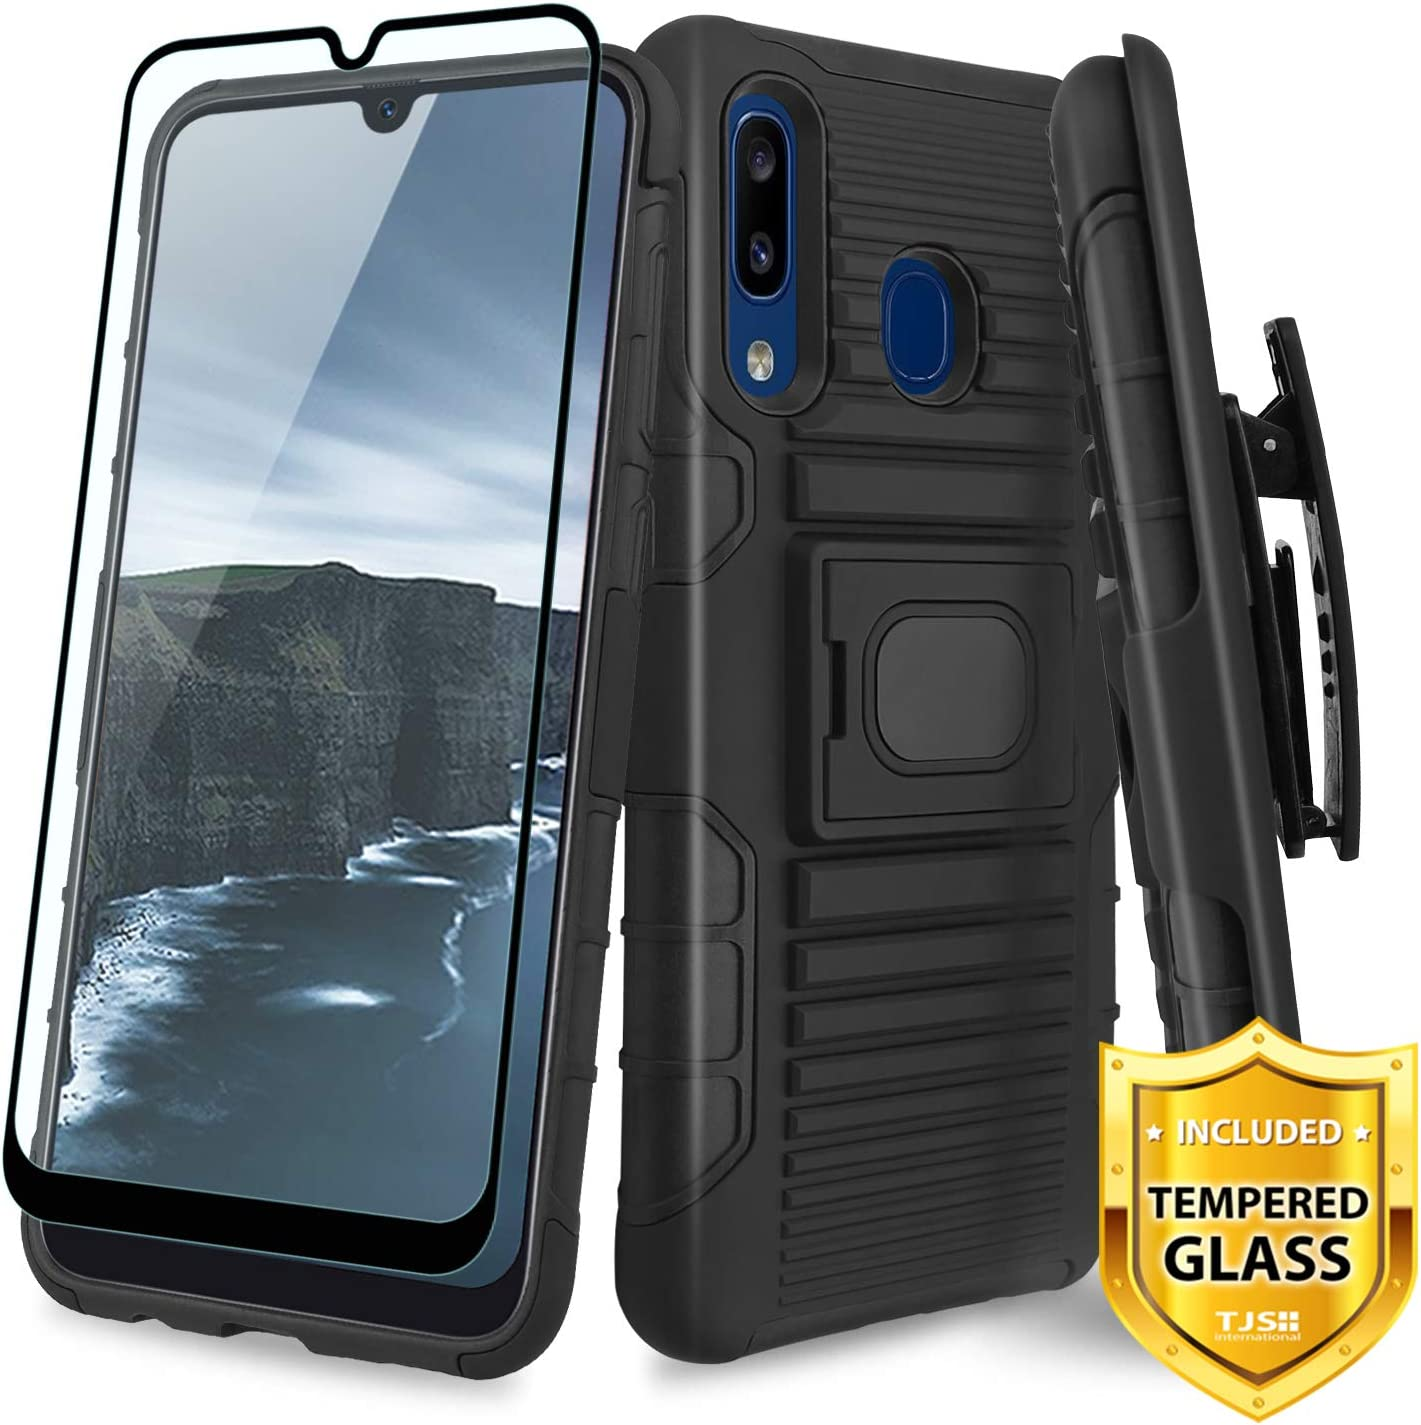 Evocel Galaxy A20 Case Explorer Series Pro with Glass Screen Protector and Belt Clip Holster for The Samsung Galaxy A20 Camouflage